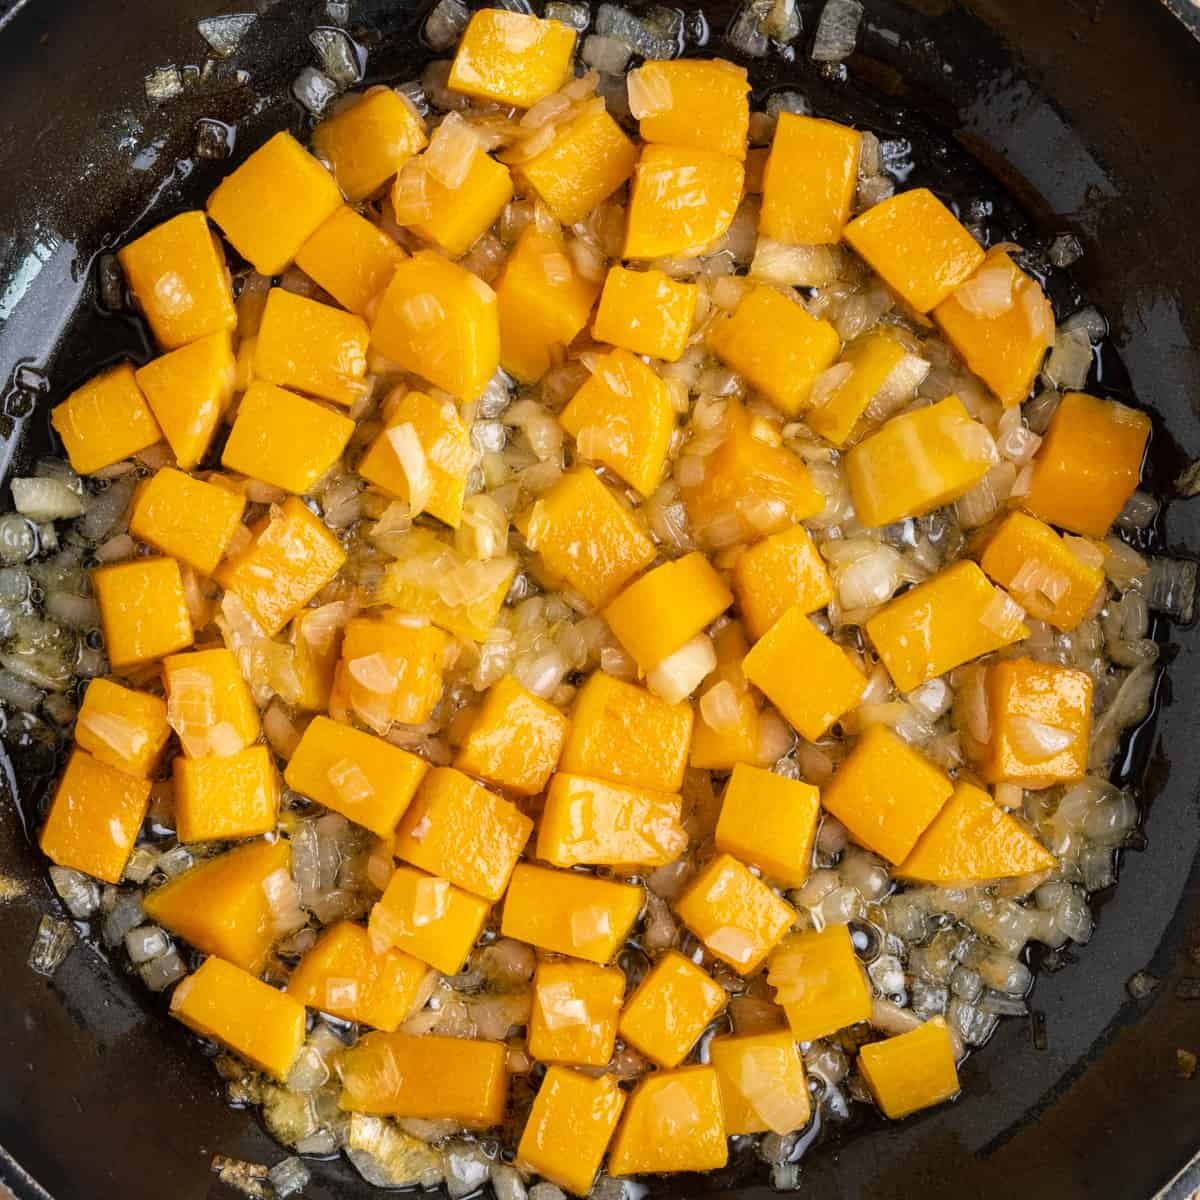 Sauteed butternut squash and onion in a pan.